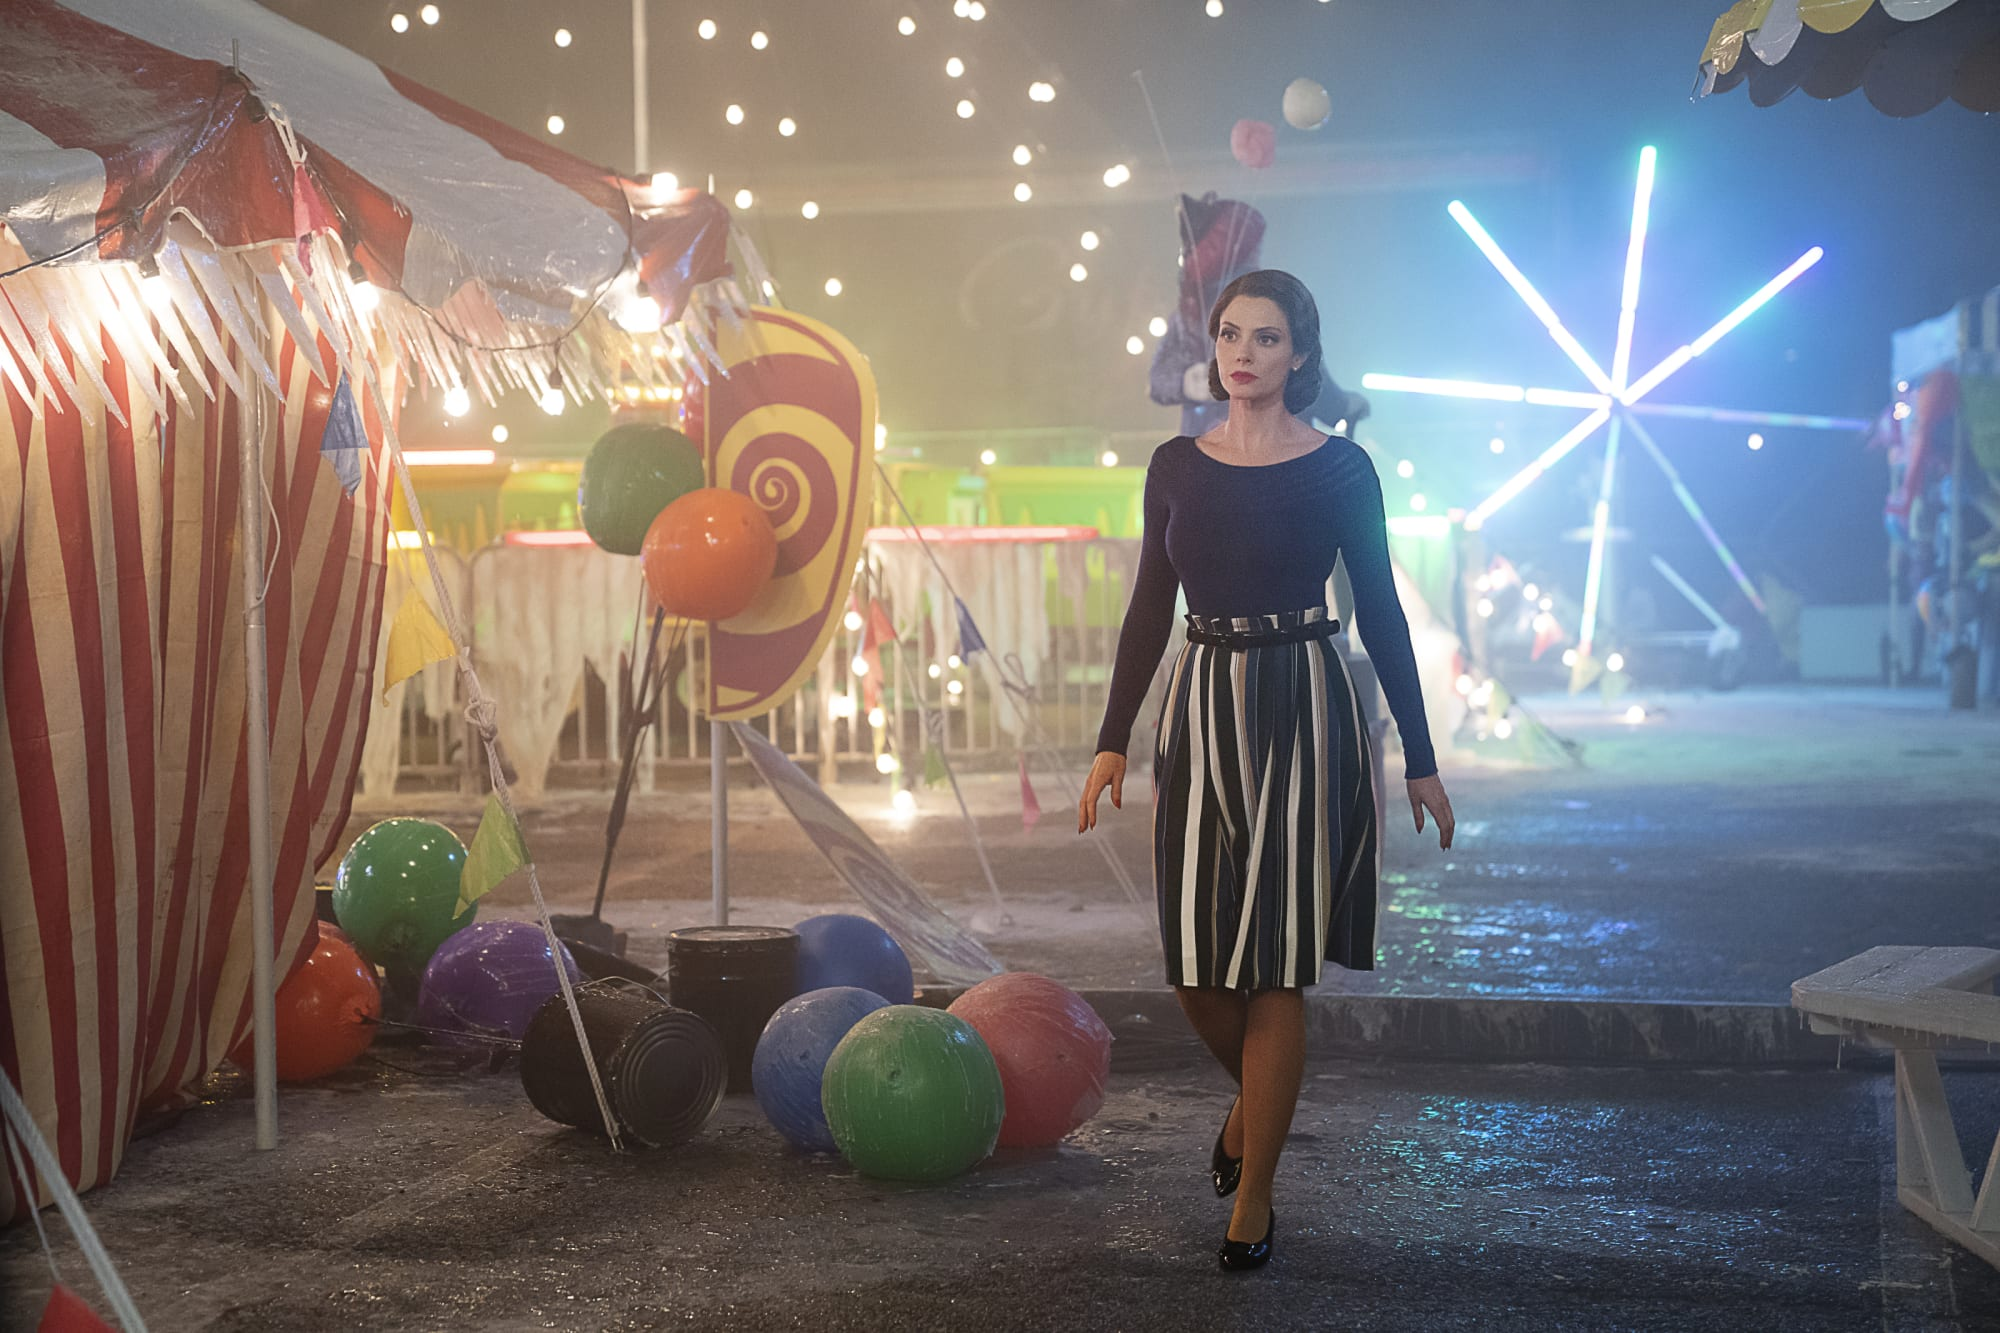 Doom Patrol season 3, Malignant, and more on HBO Max in September - Culturess